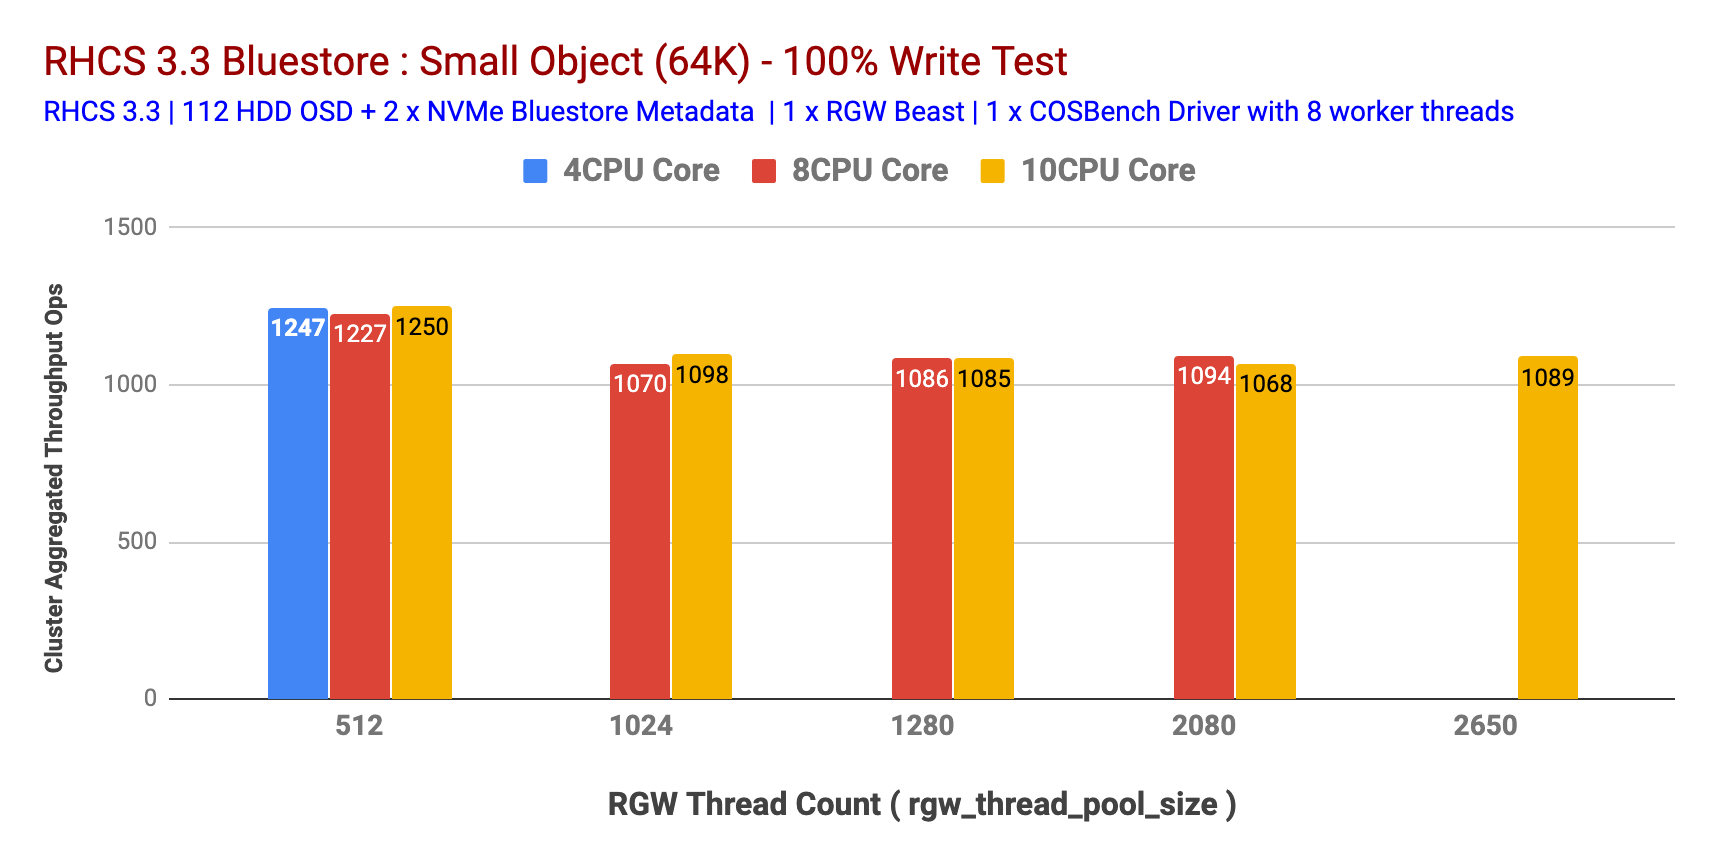 Chart 5: Small Object 100% Write test